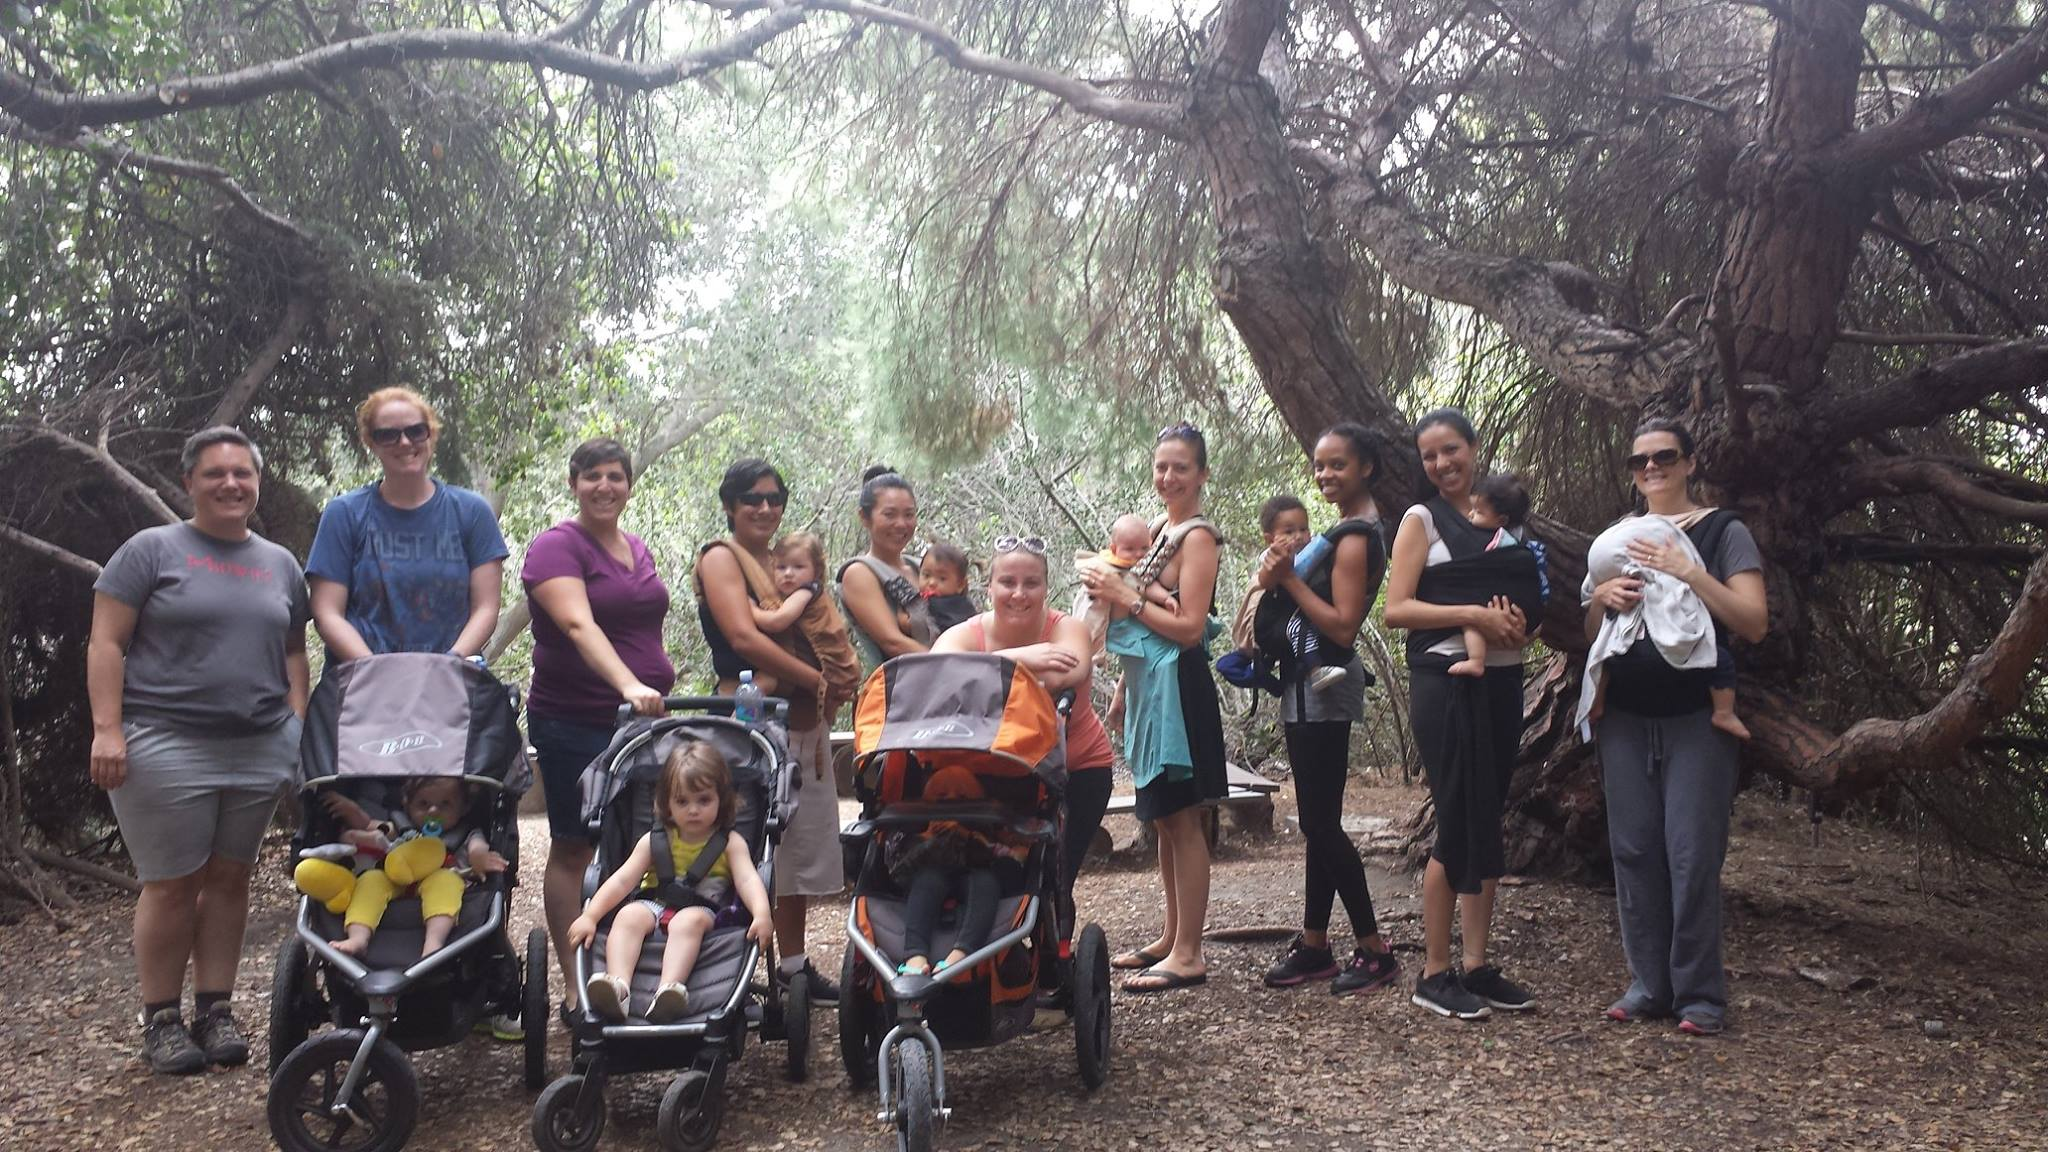 Taproot Midwifery families out for a hike.